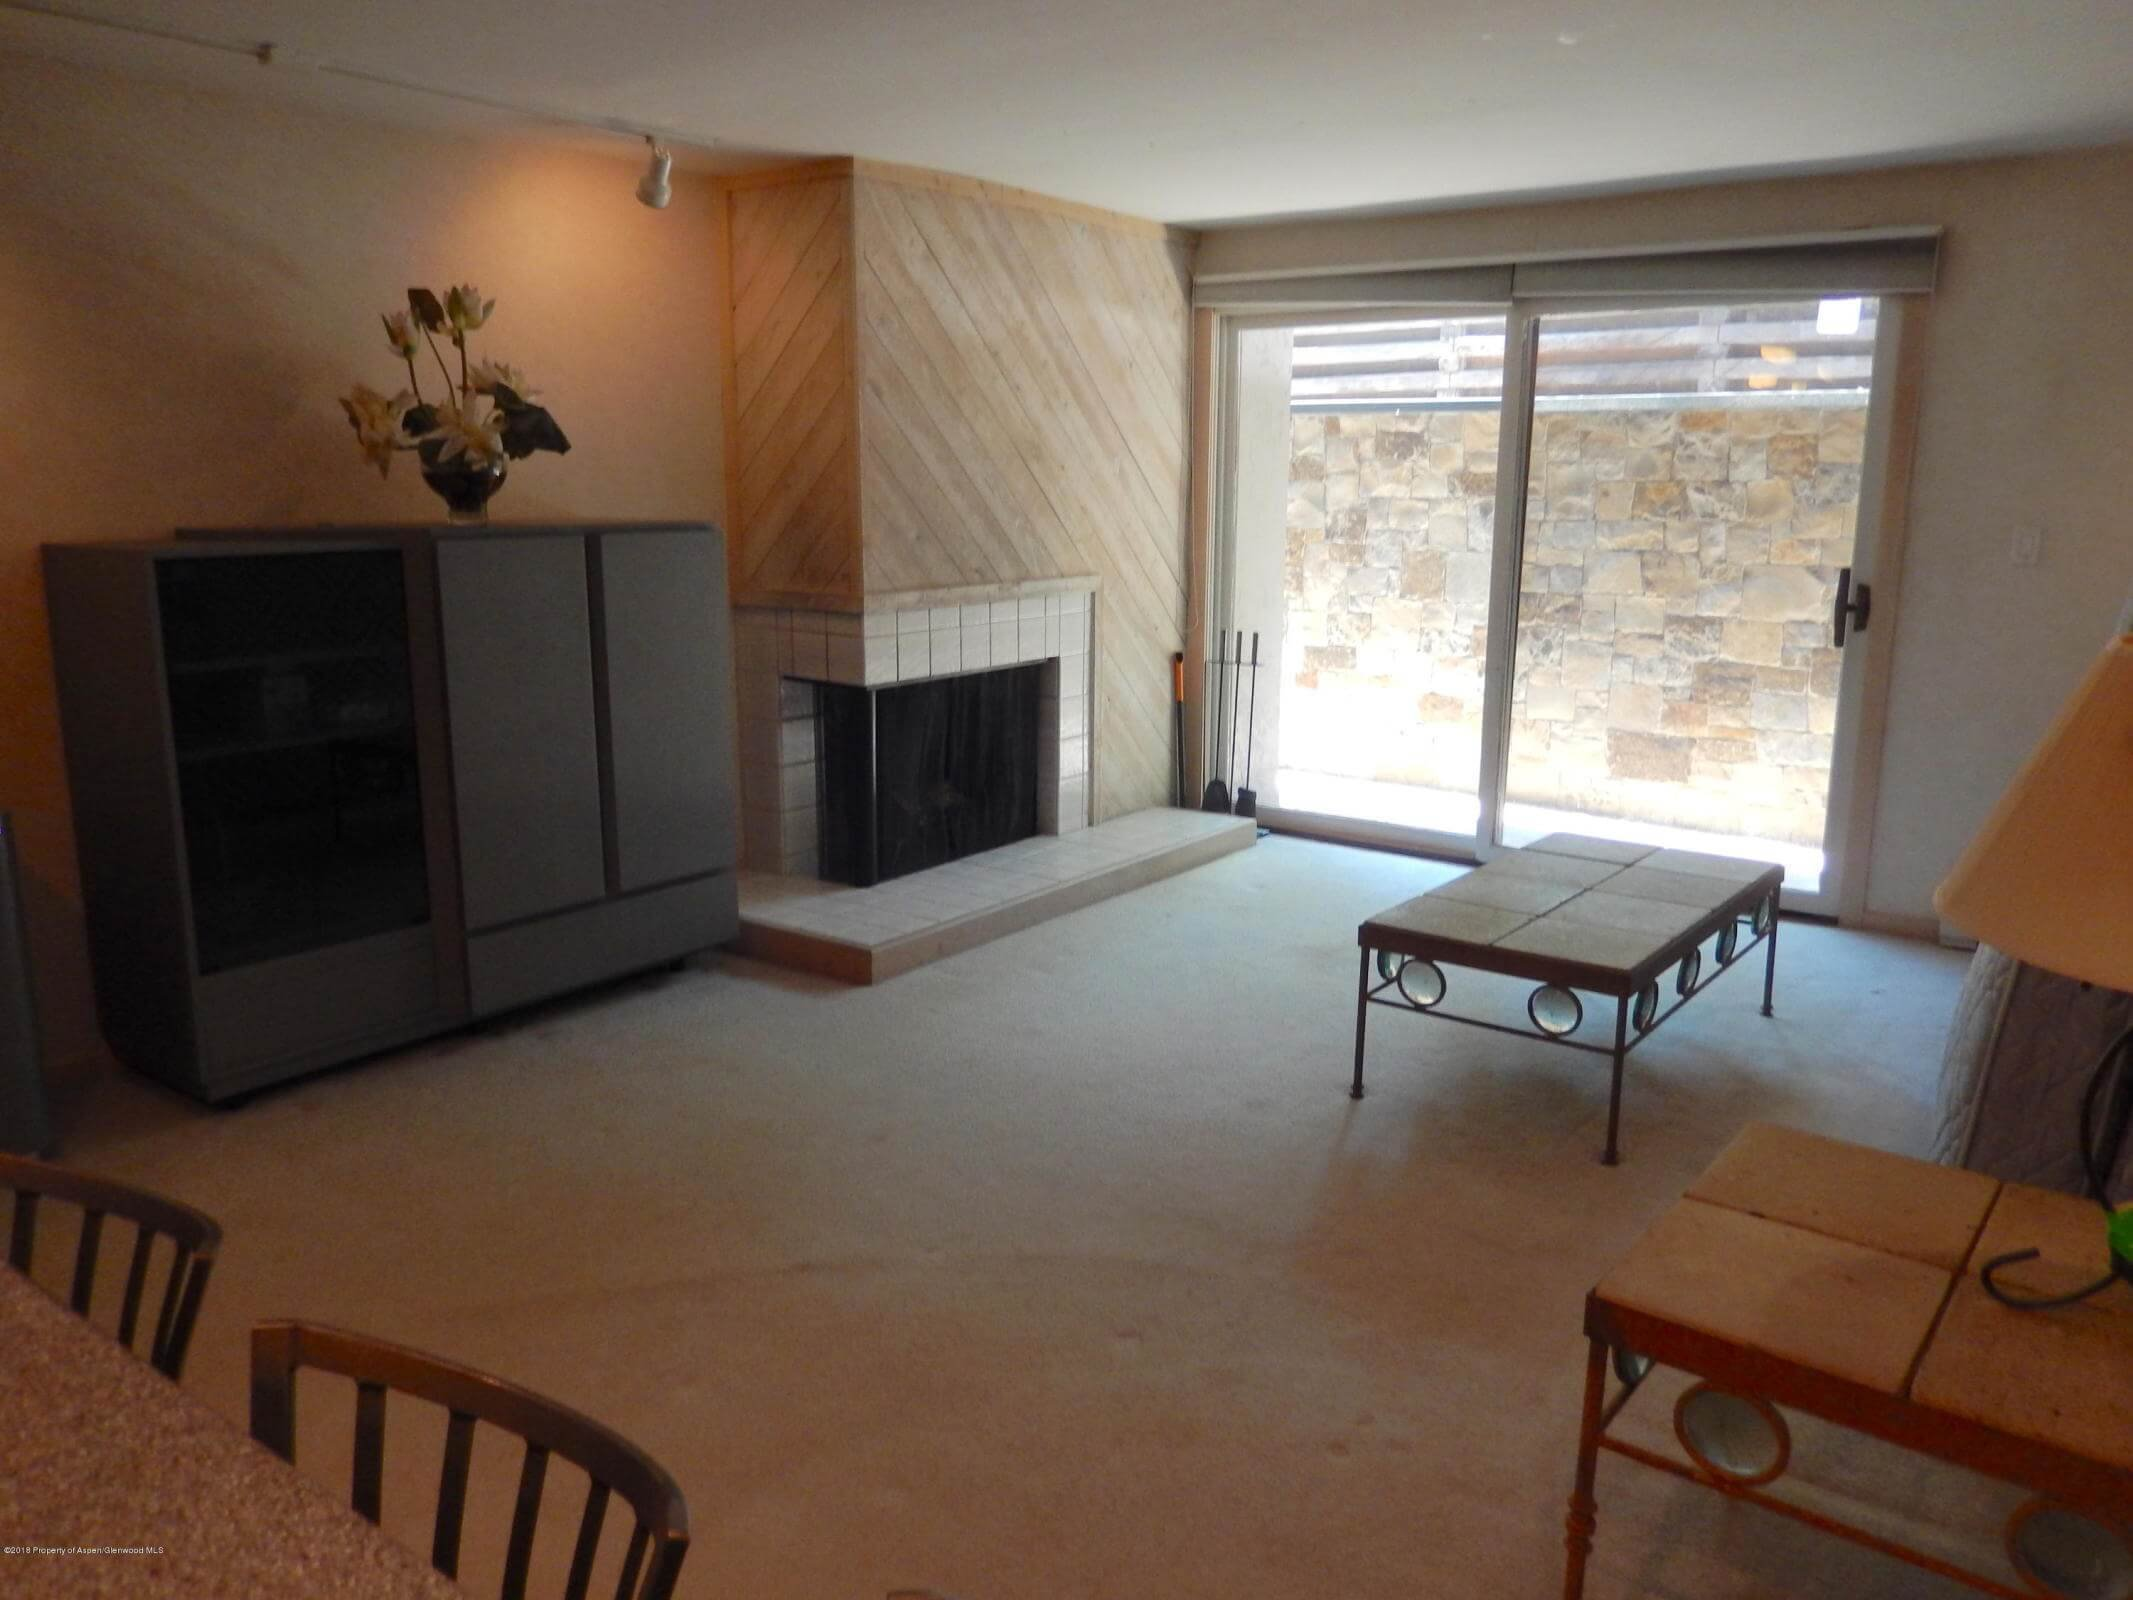 700 Monarch Street 104, Aspen CO 2-Bdrm Condo Flip Thumbnail